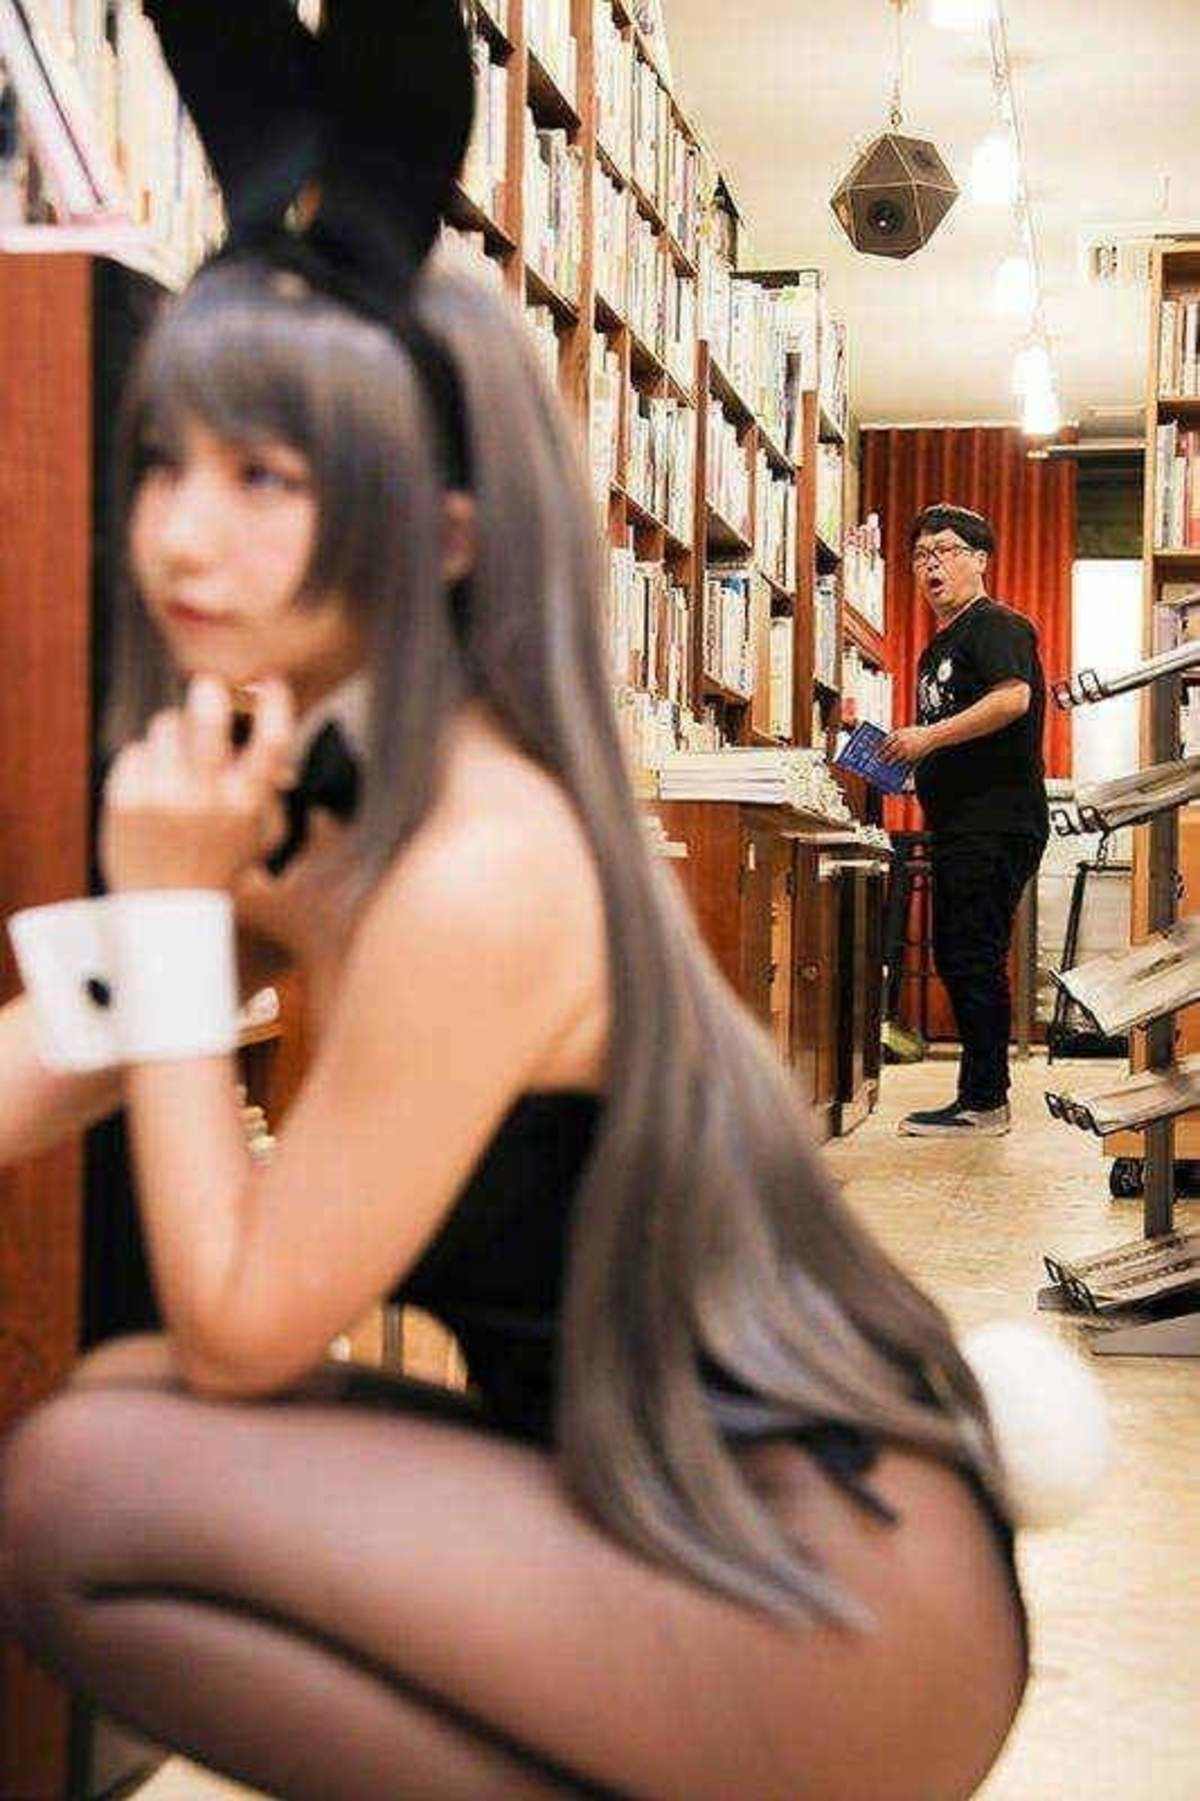 Bunnygirl Senpai Live Action. join list: 3DLewds (790 subs)Mention History join list:. not my bunny giorl join list: ReligionofThiccThighsMention History